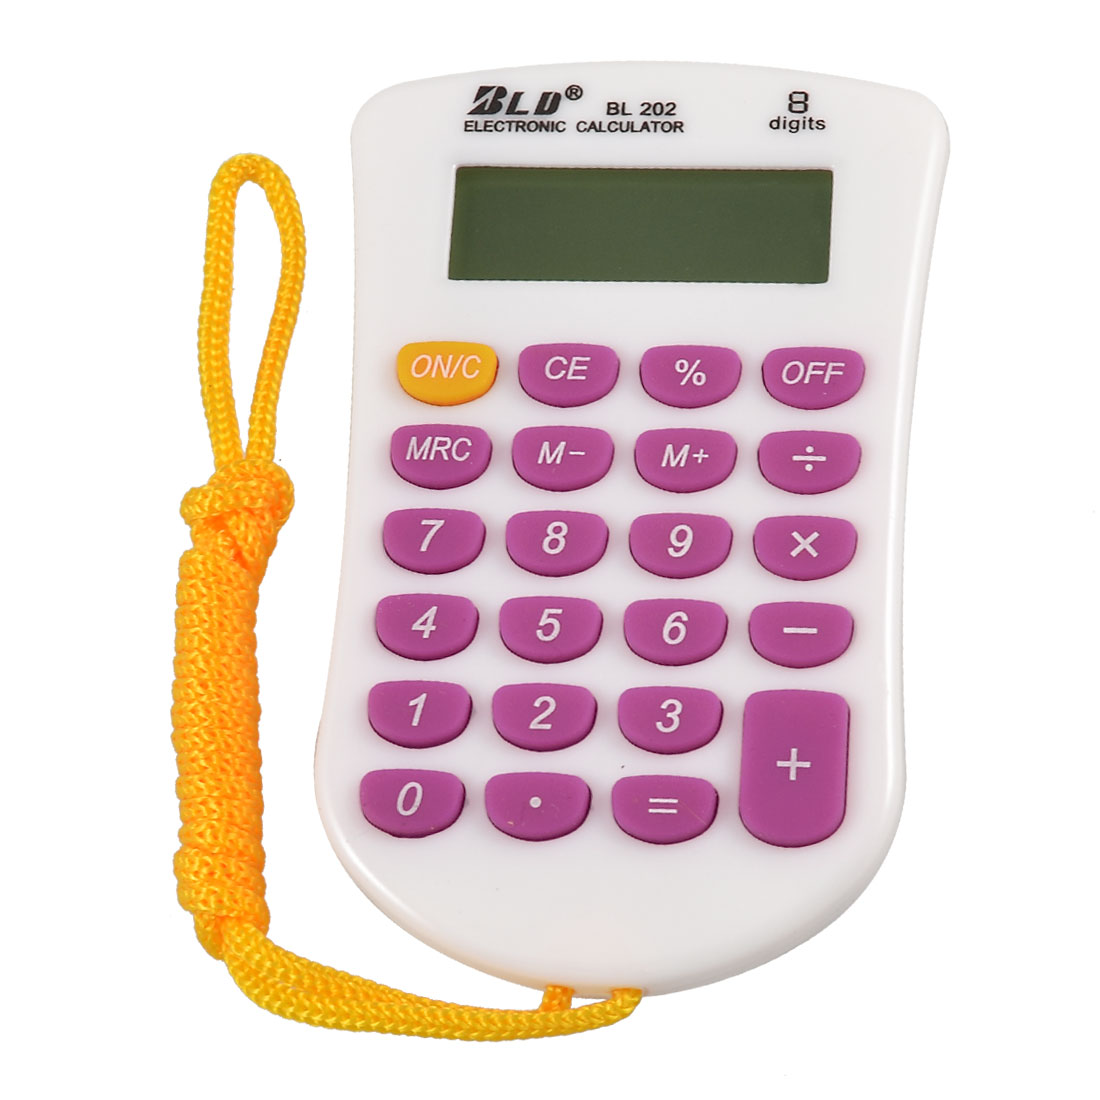 School Office Desktop Rubber 23 Keys LCD Handheld Calculator w Neck Strap